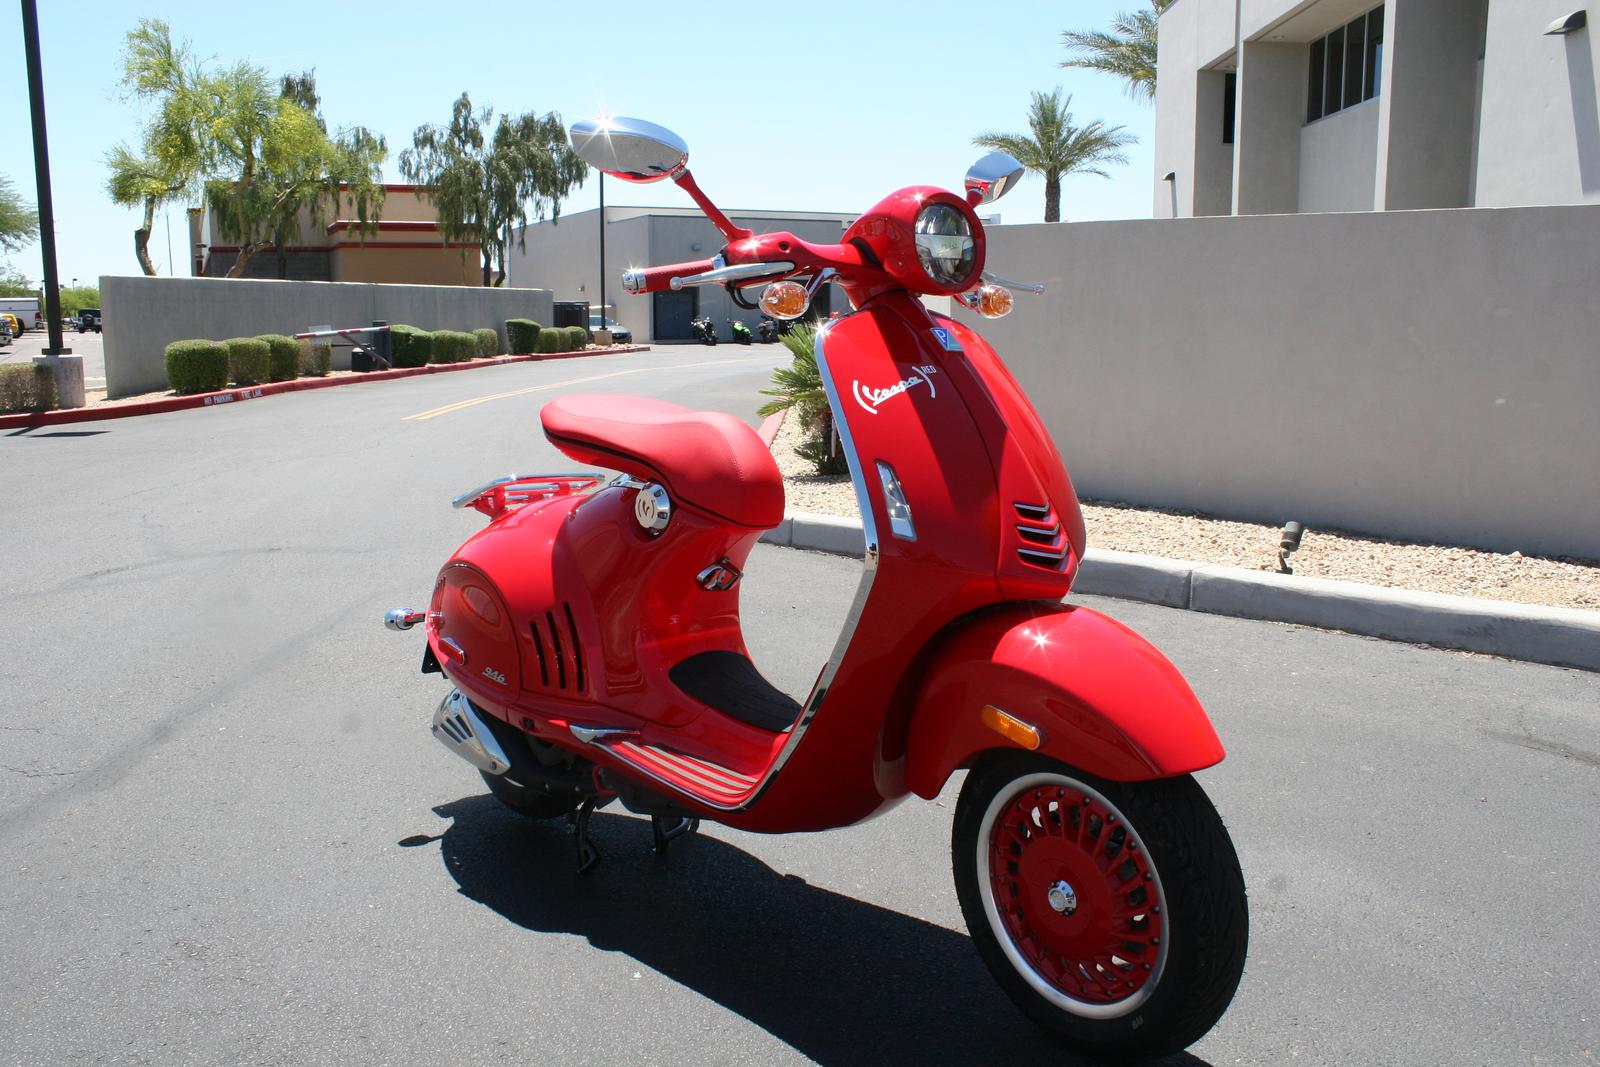 2018 Vespa 946 For Sale In Scottsdale Az Go Az